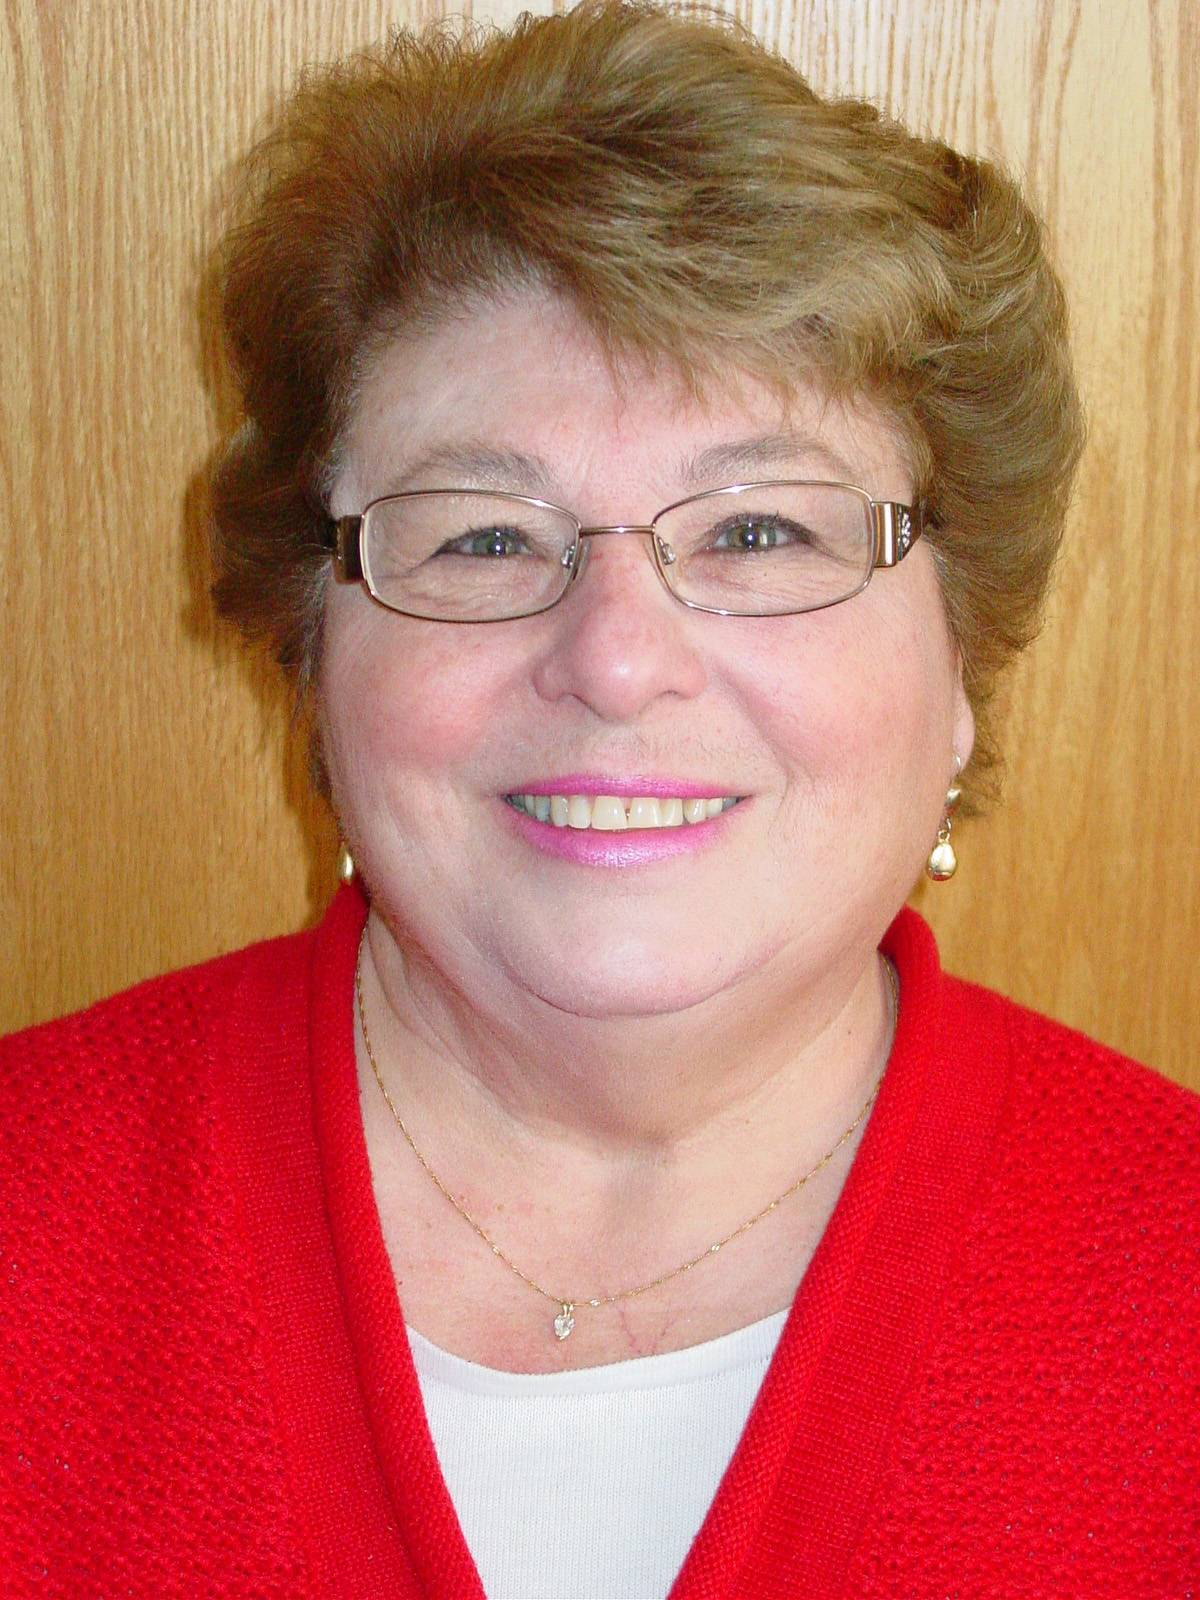 Jane Michelotti, running for Bloomingdale Village Clerk (4-year Term)